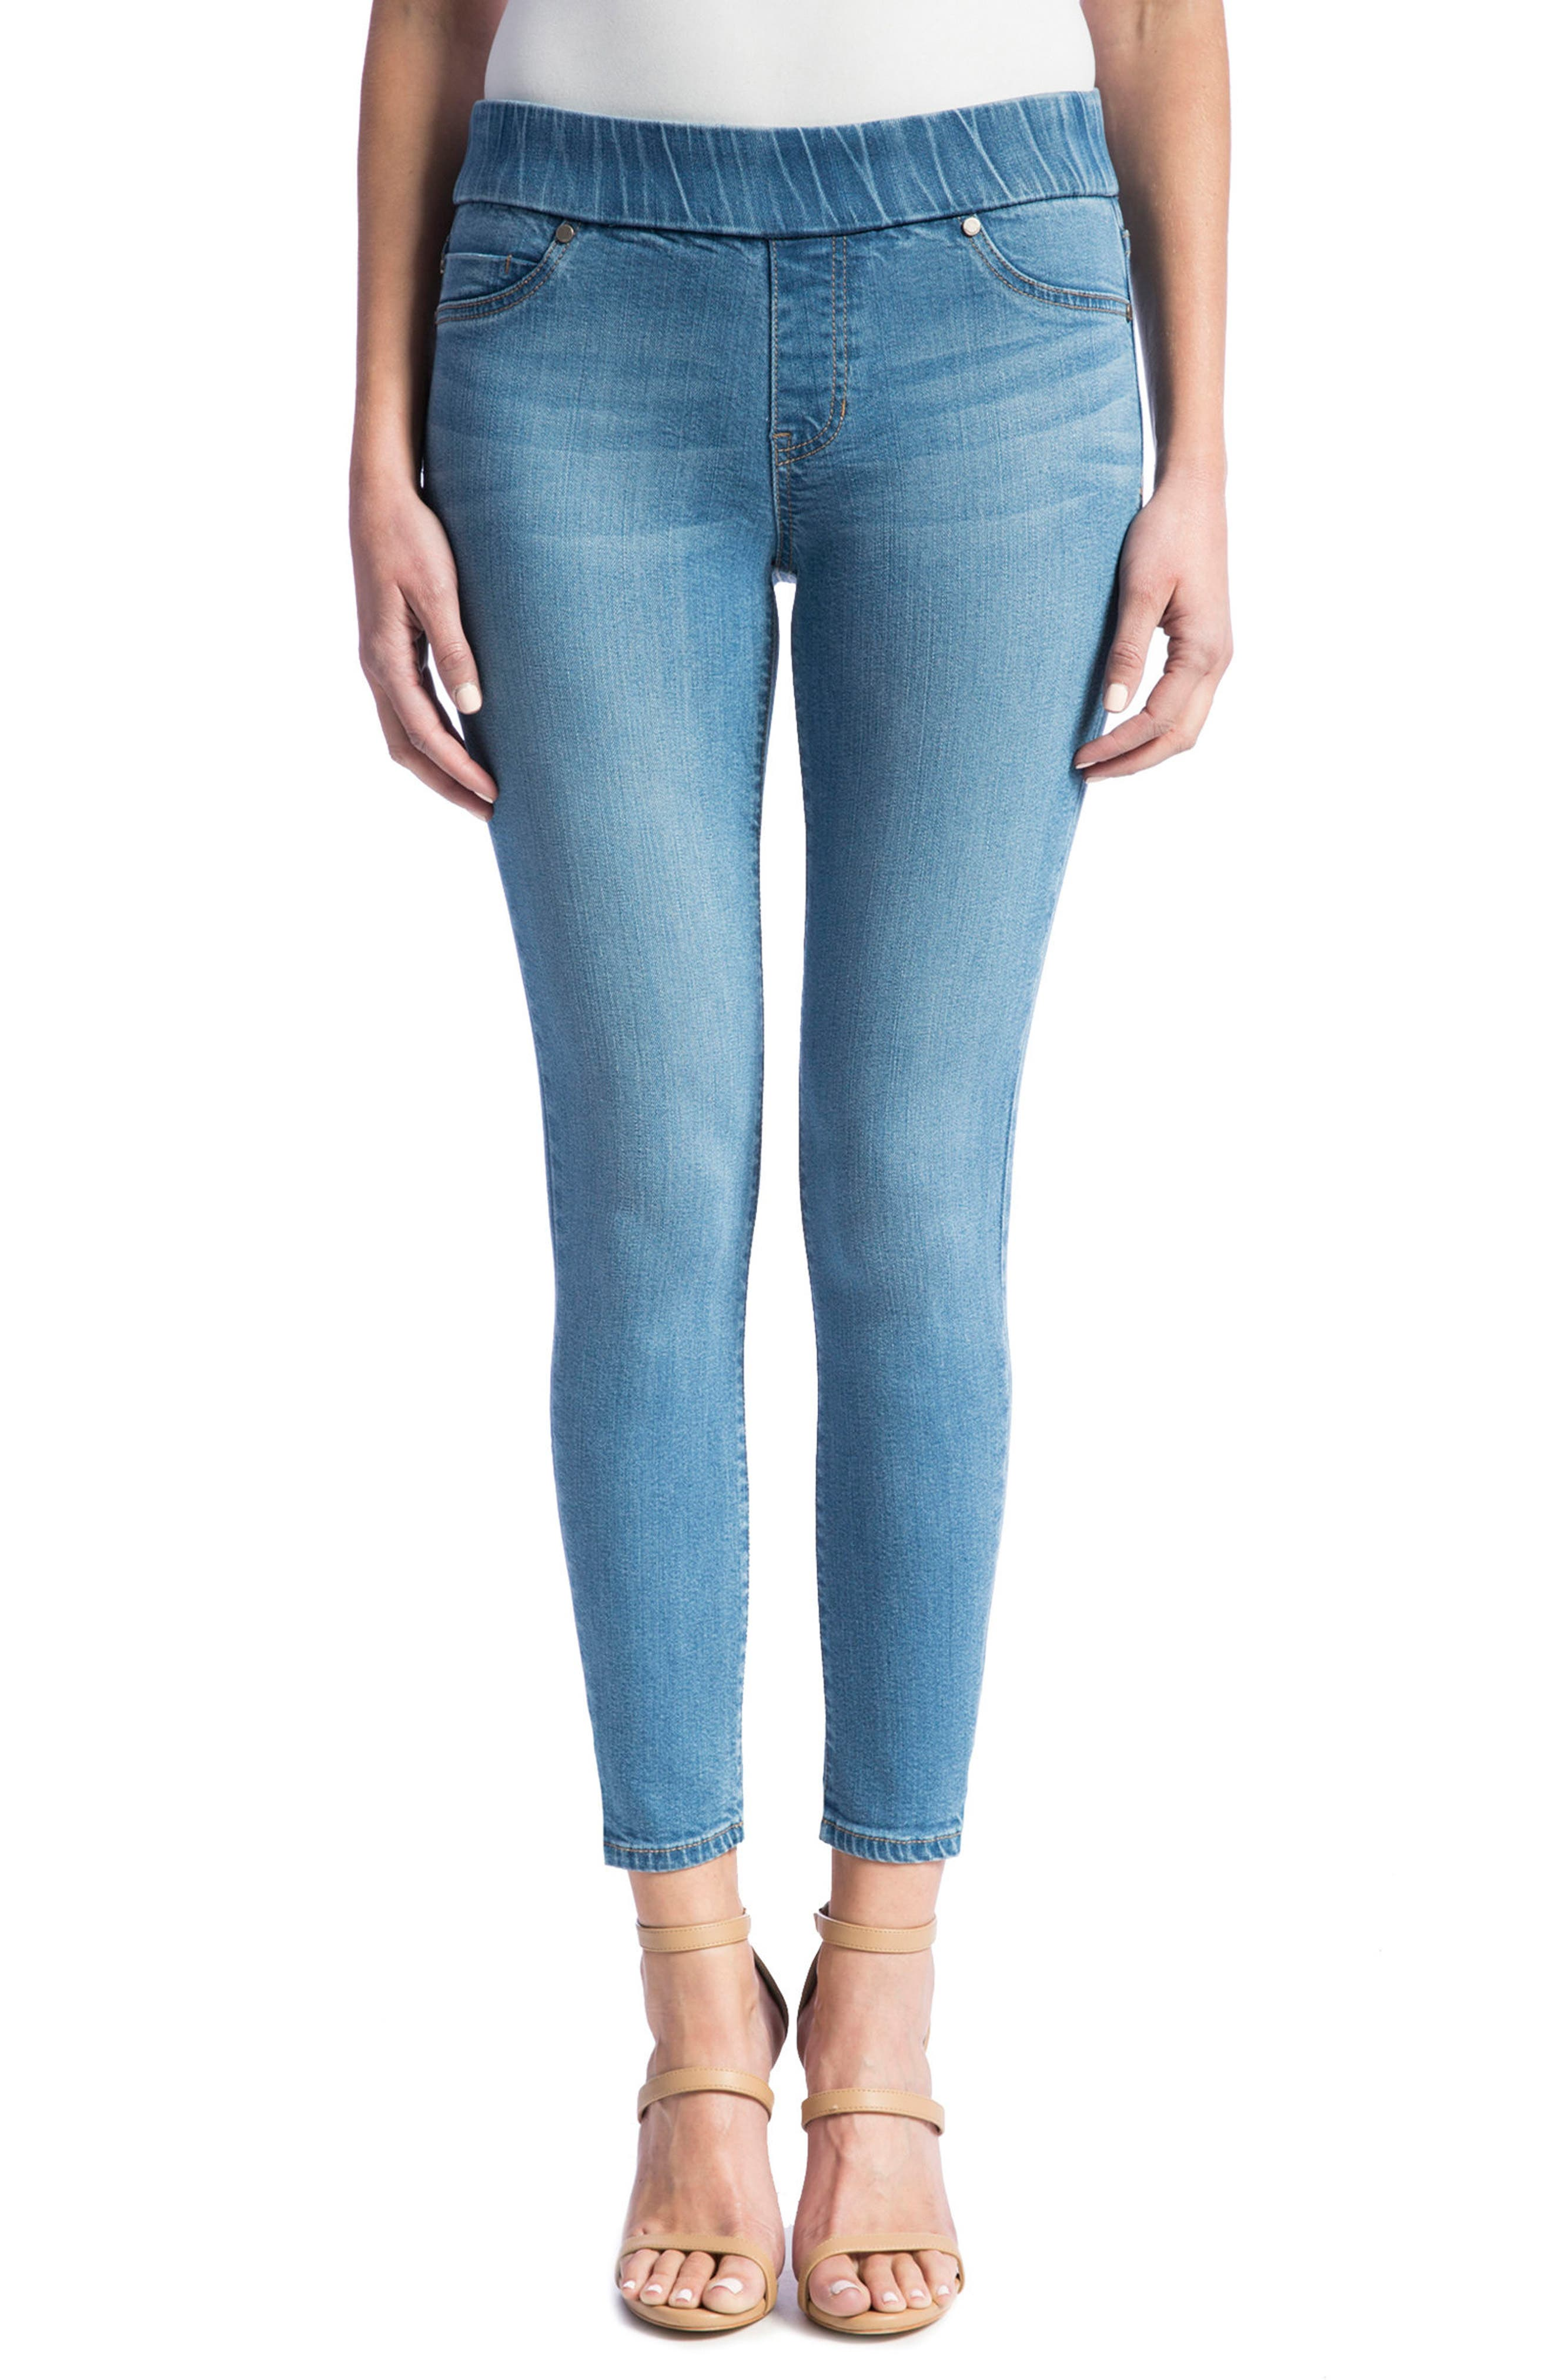 Liverpool Jeans Company Stretch Denim Ankle Leggings (Aster Light Blue)